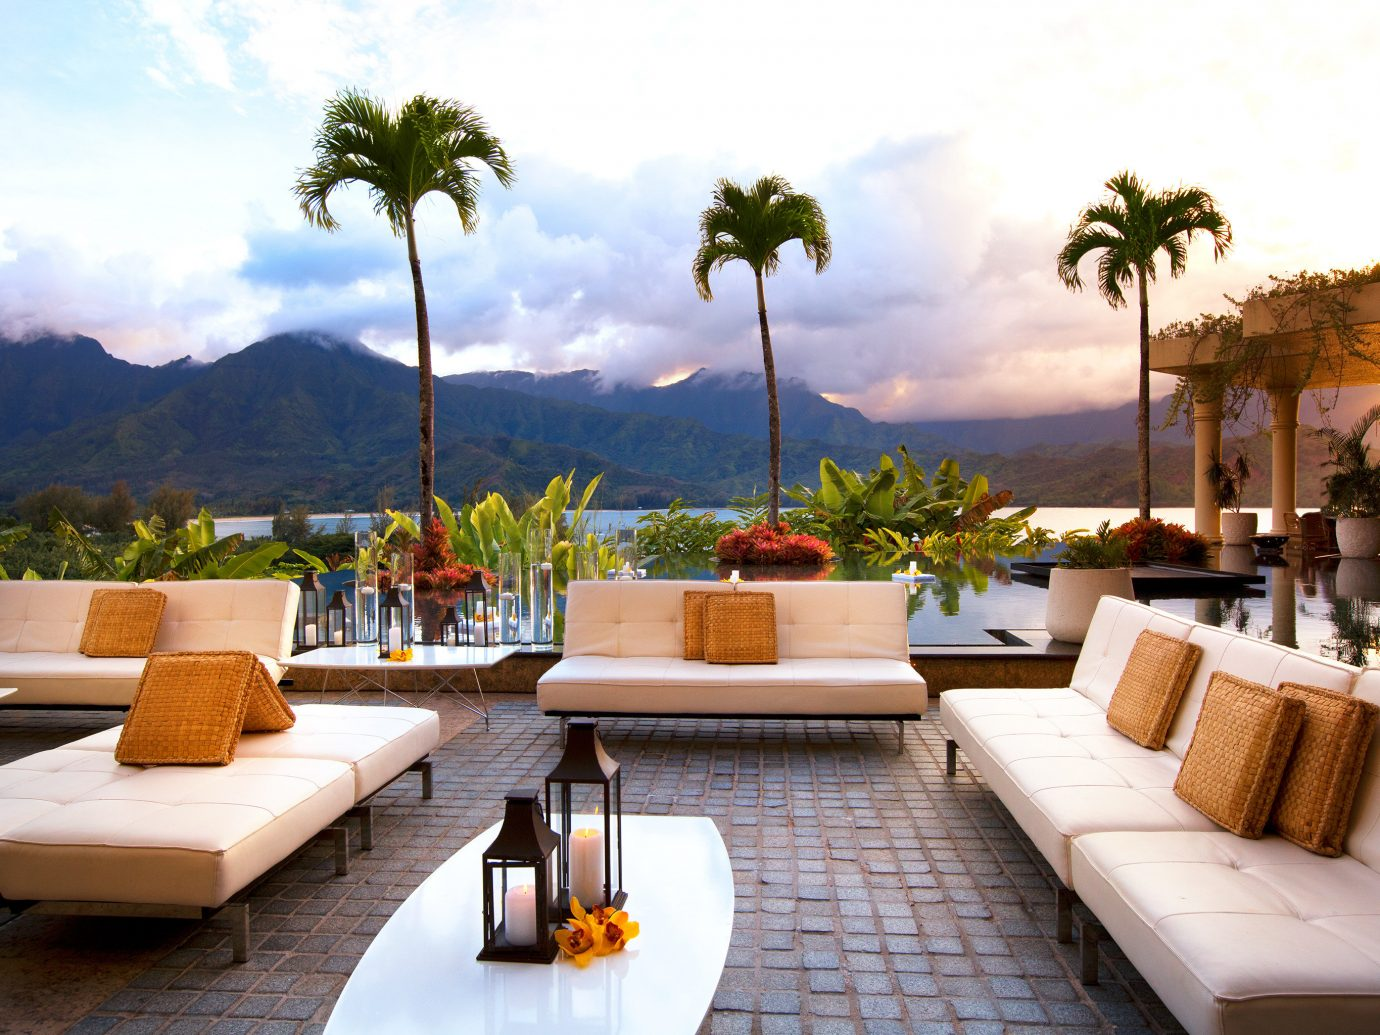 St Regis Outdoor Patio At The Princeville Resort In Kauai